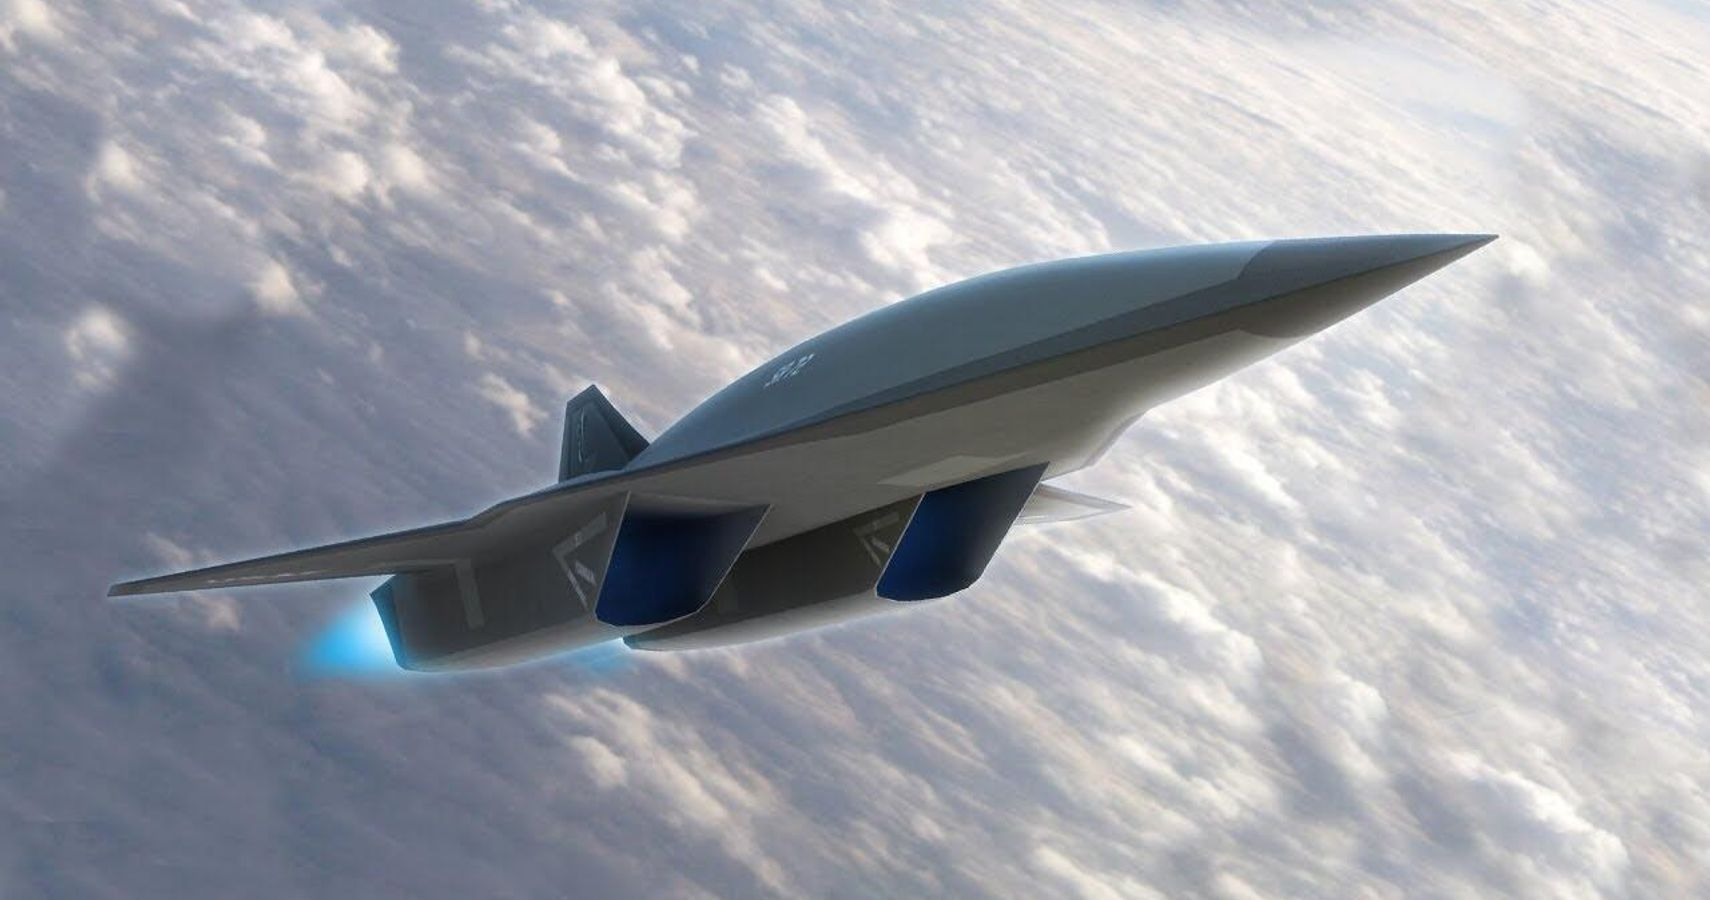 A Complete Guide To Lockheed Martin's Unmanned Aircraft Technology